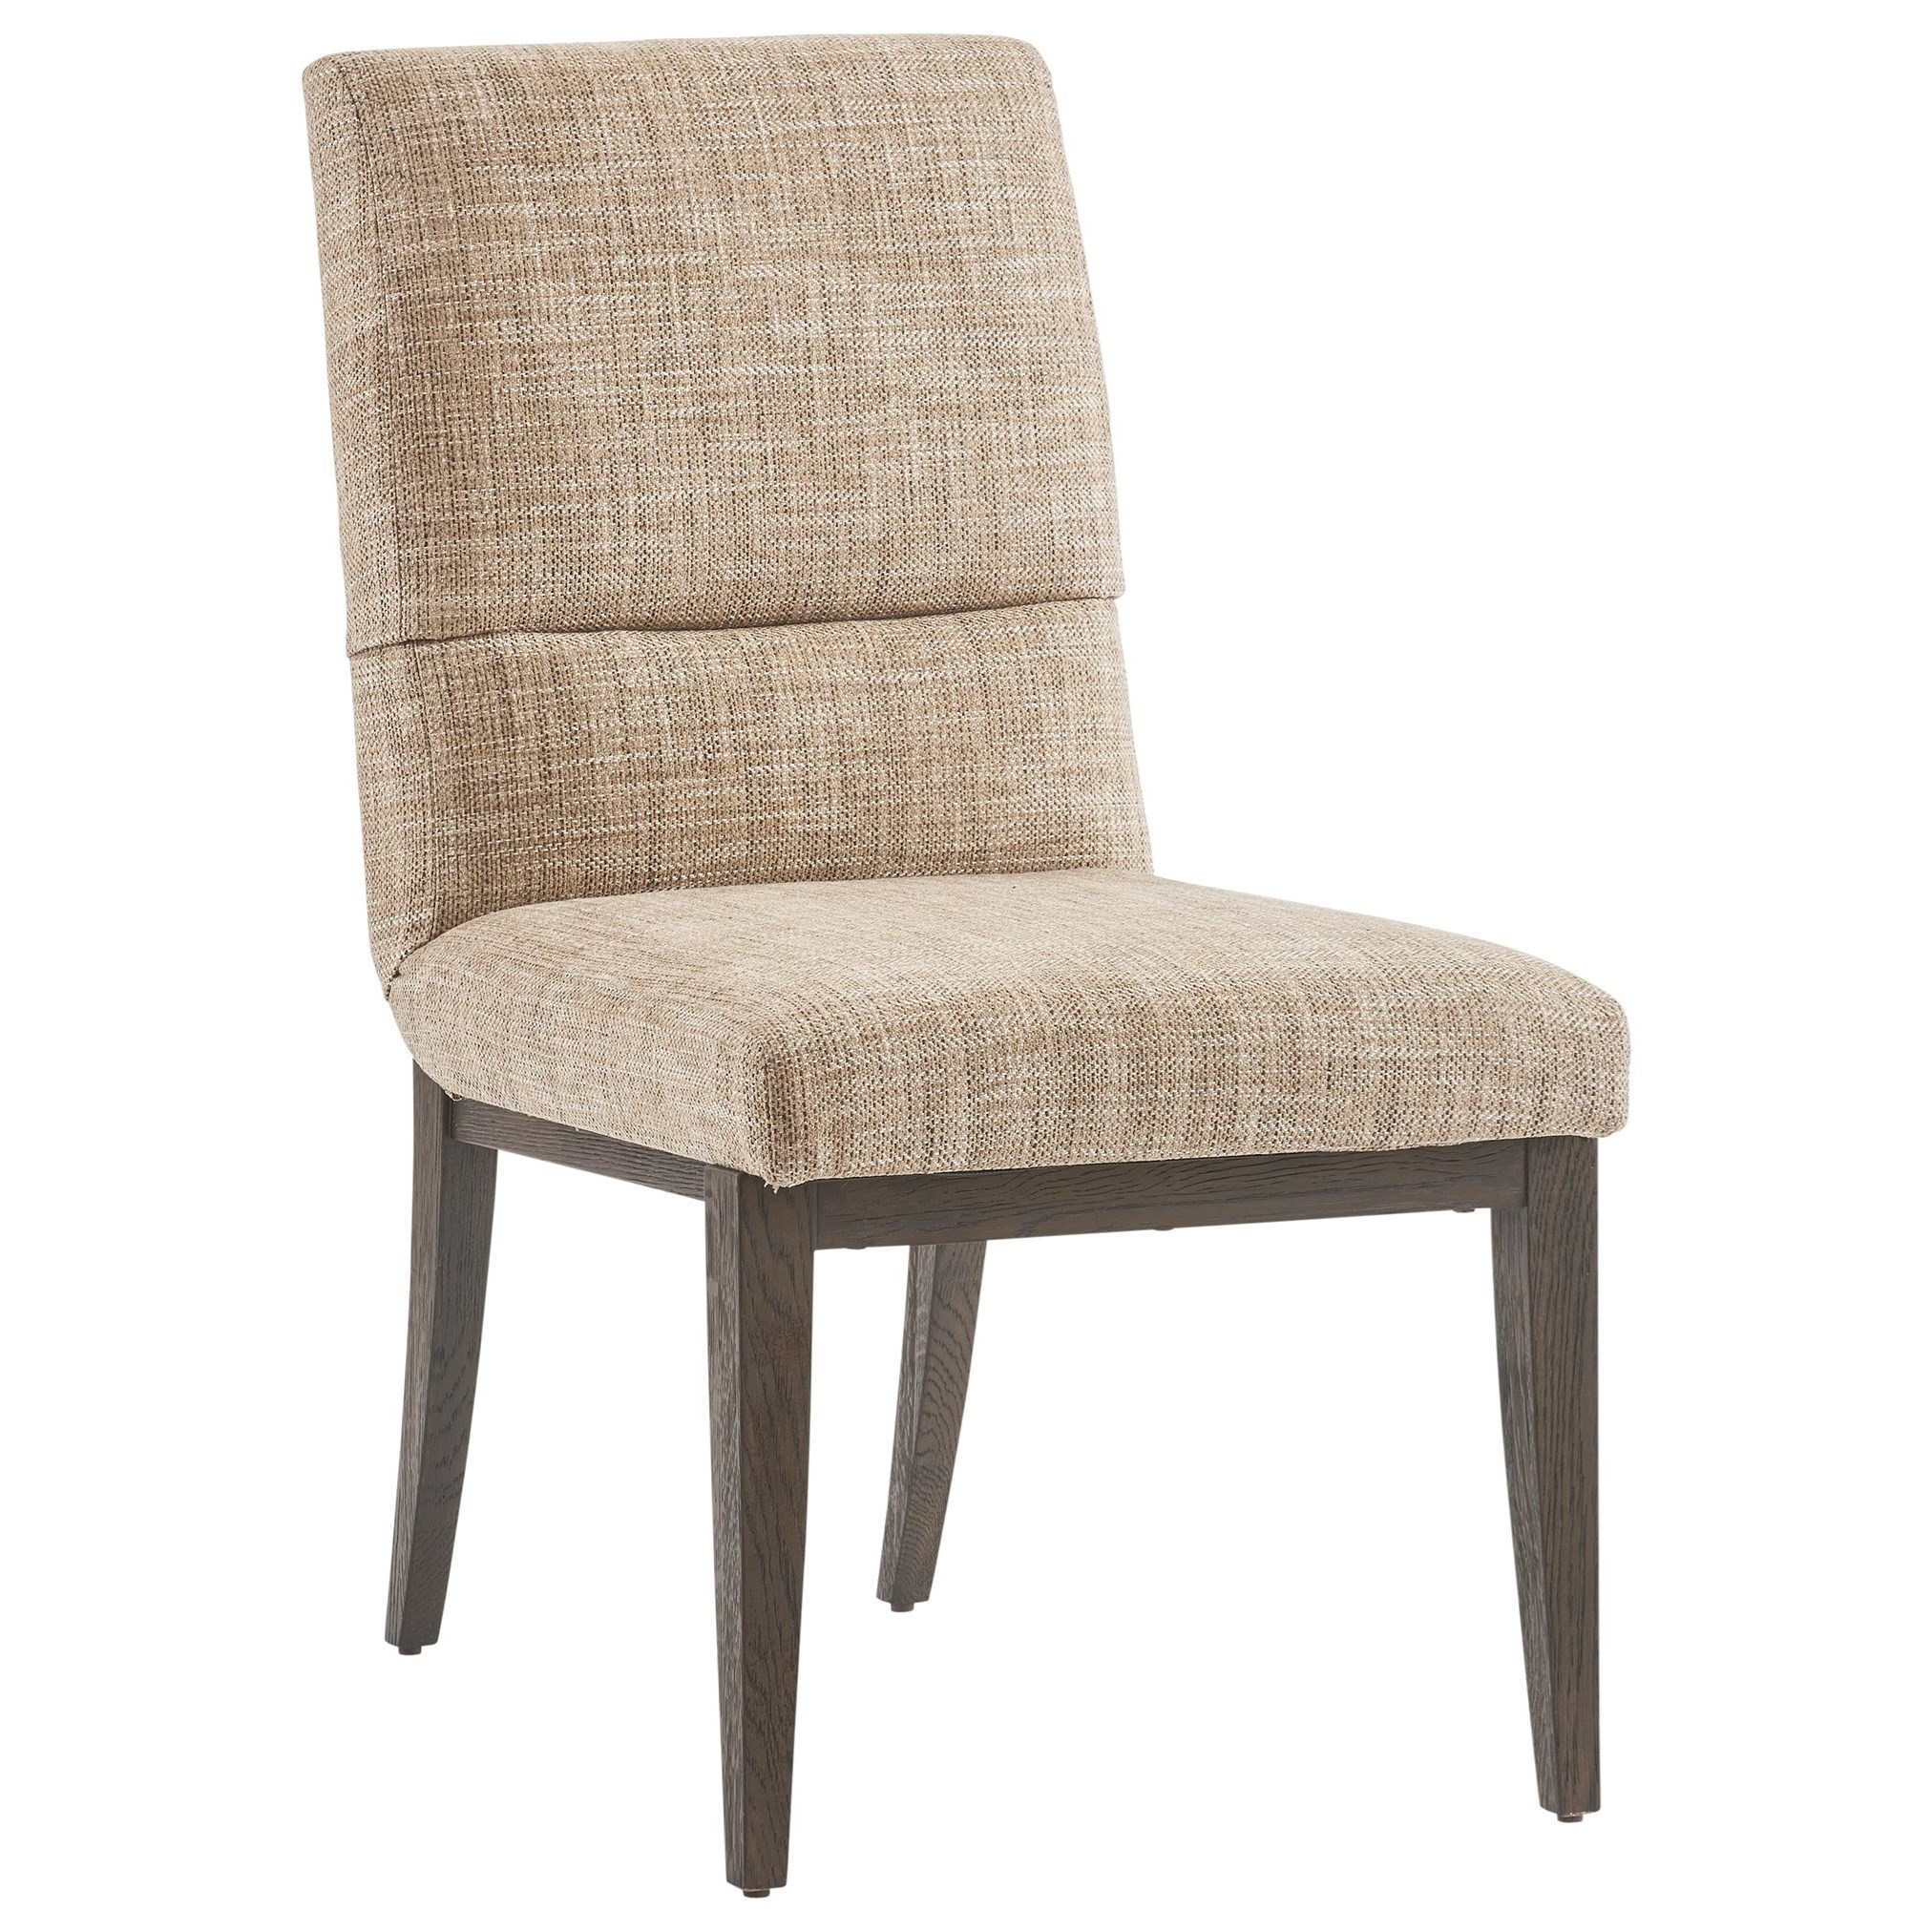 Glenwild Upholstered Side Chair with Performance Fabric